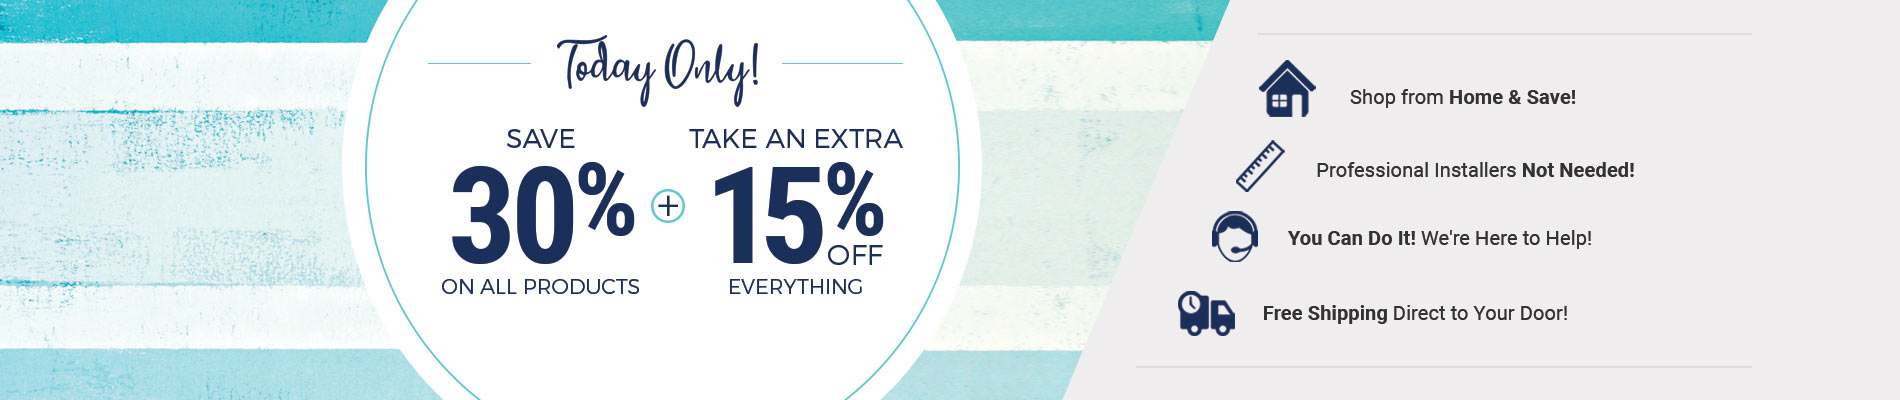 Save 30% + Extra 15% Off Everything